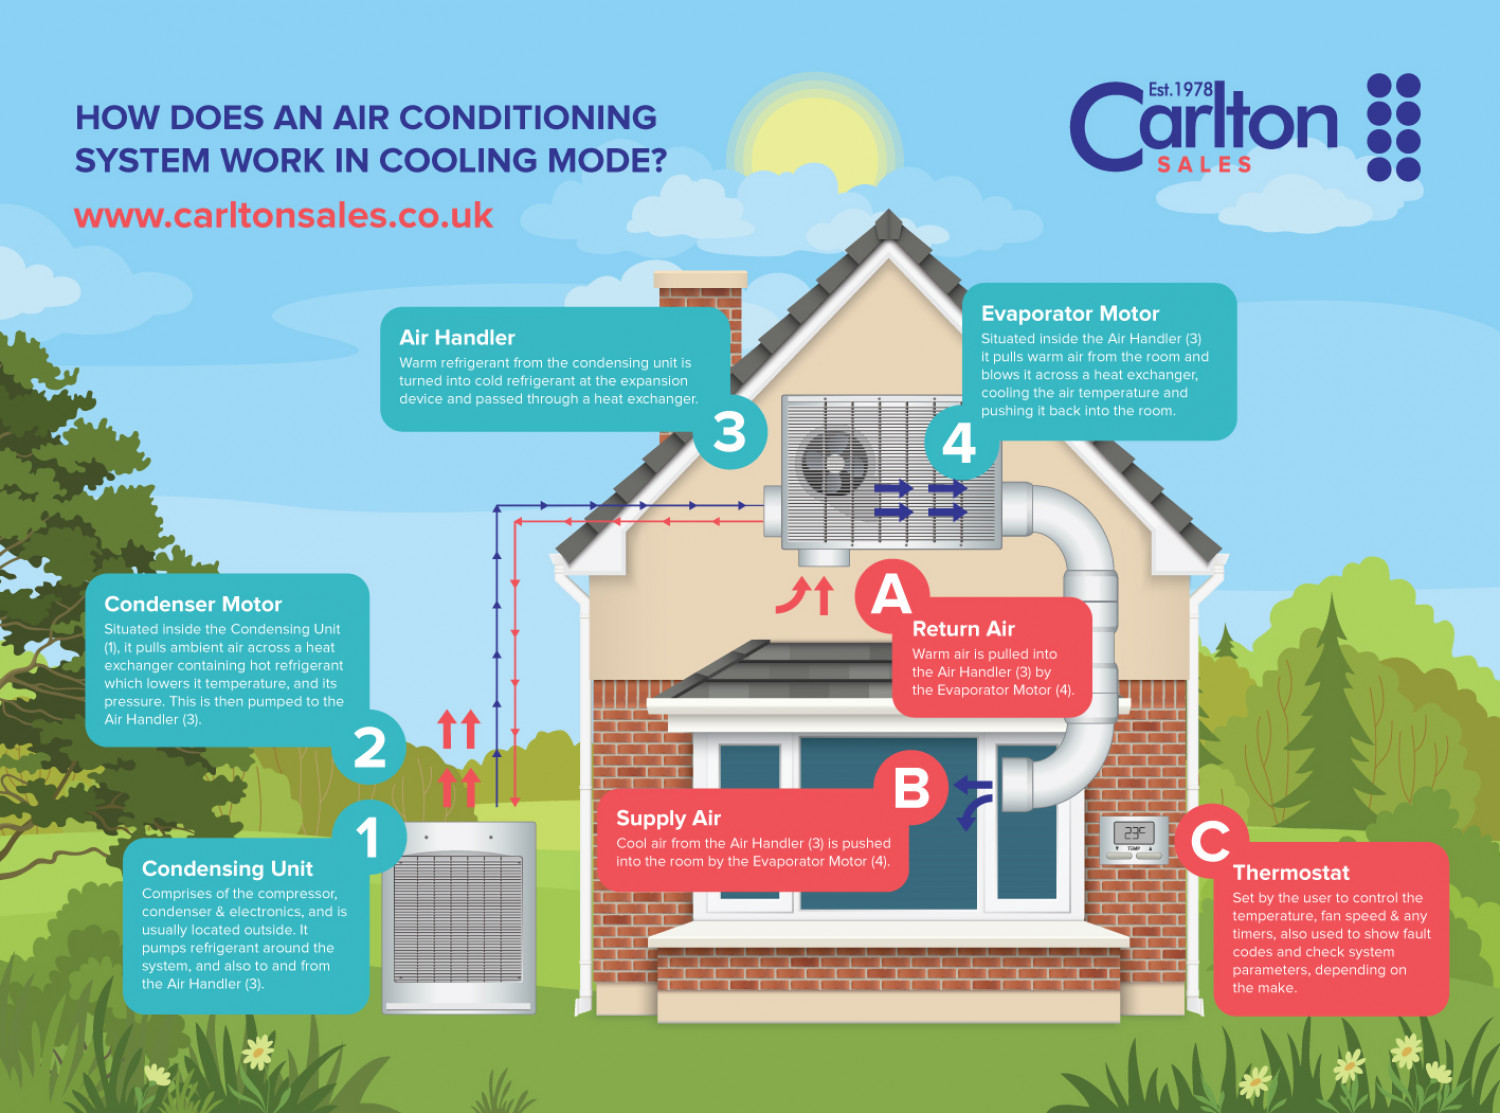 Air Conditioning System: How Does A Central Air Conditioning System Work